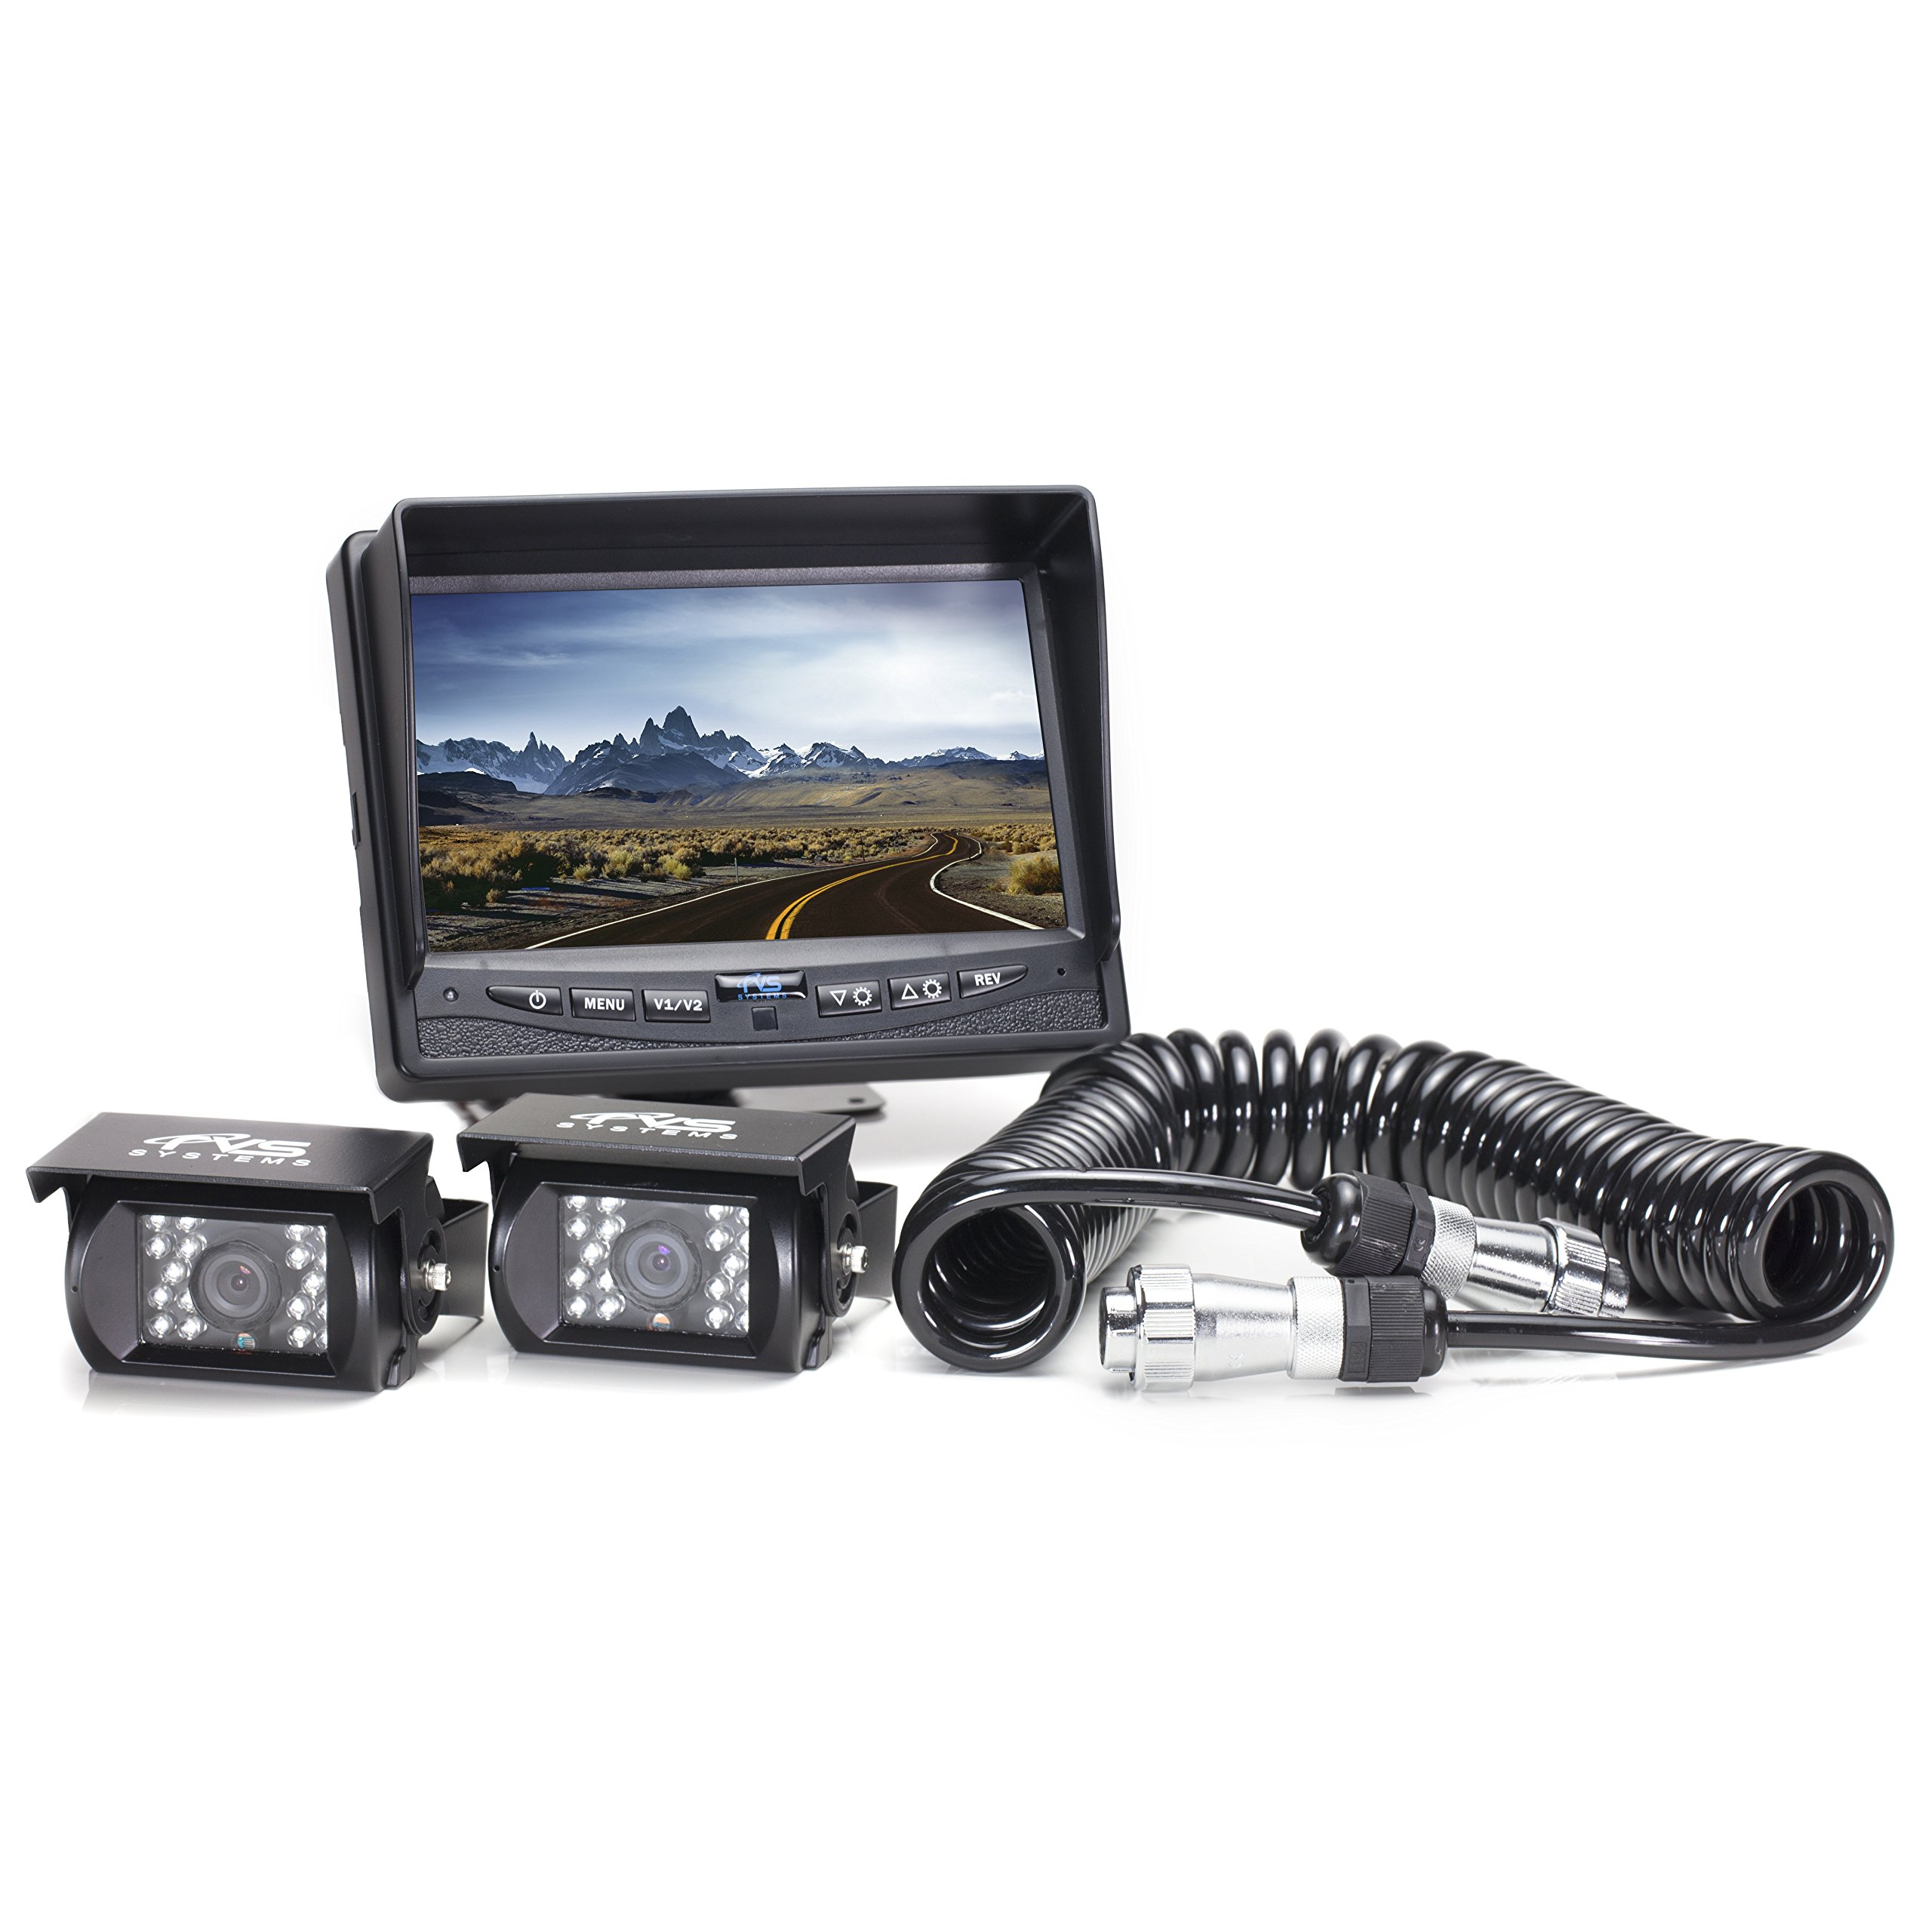 Rear View Safety RVS-770614-213 Video Camera with 7-Inch LCD (Black) by Rear View Safety